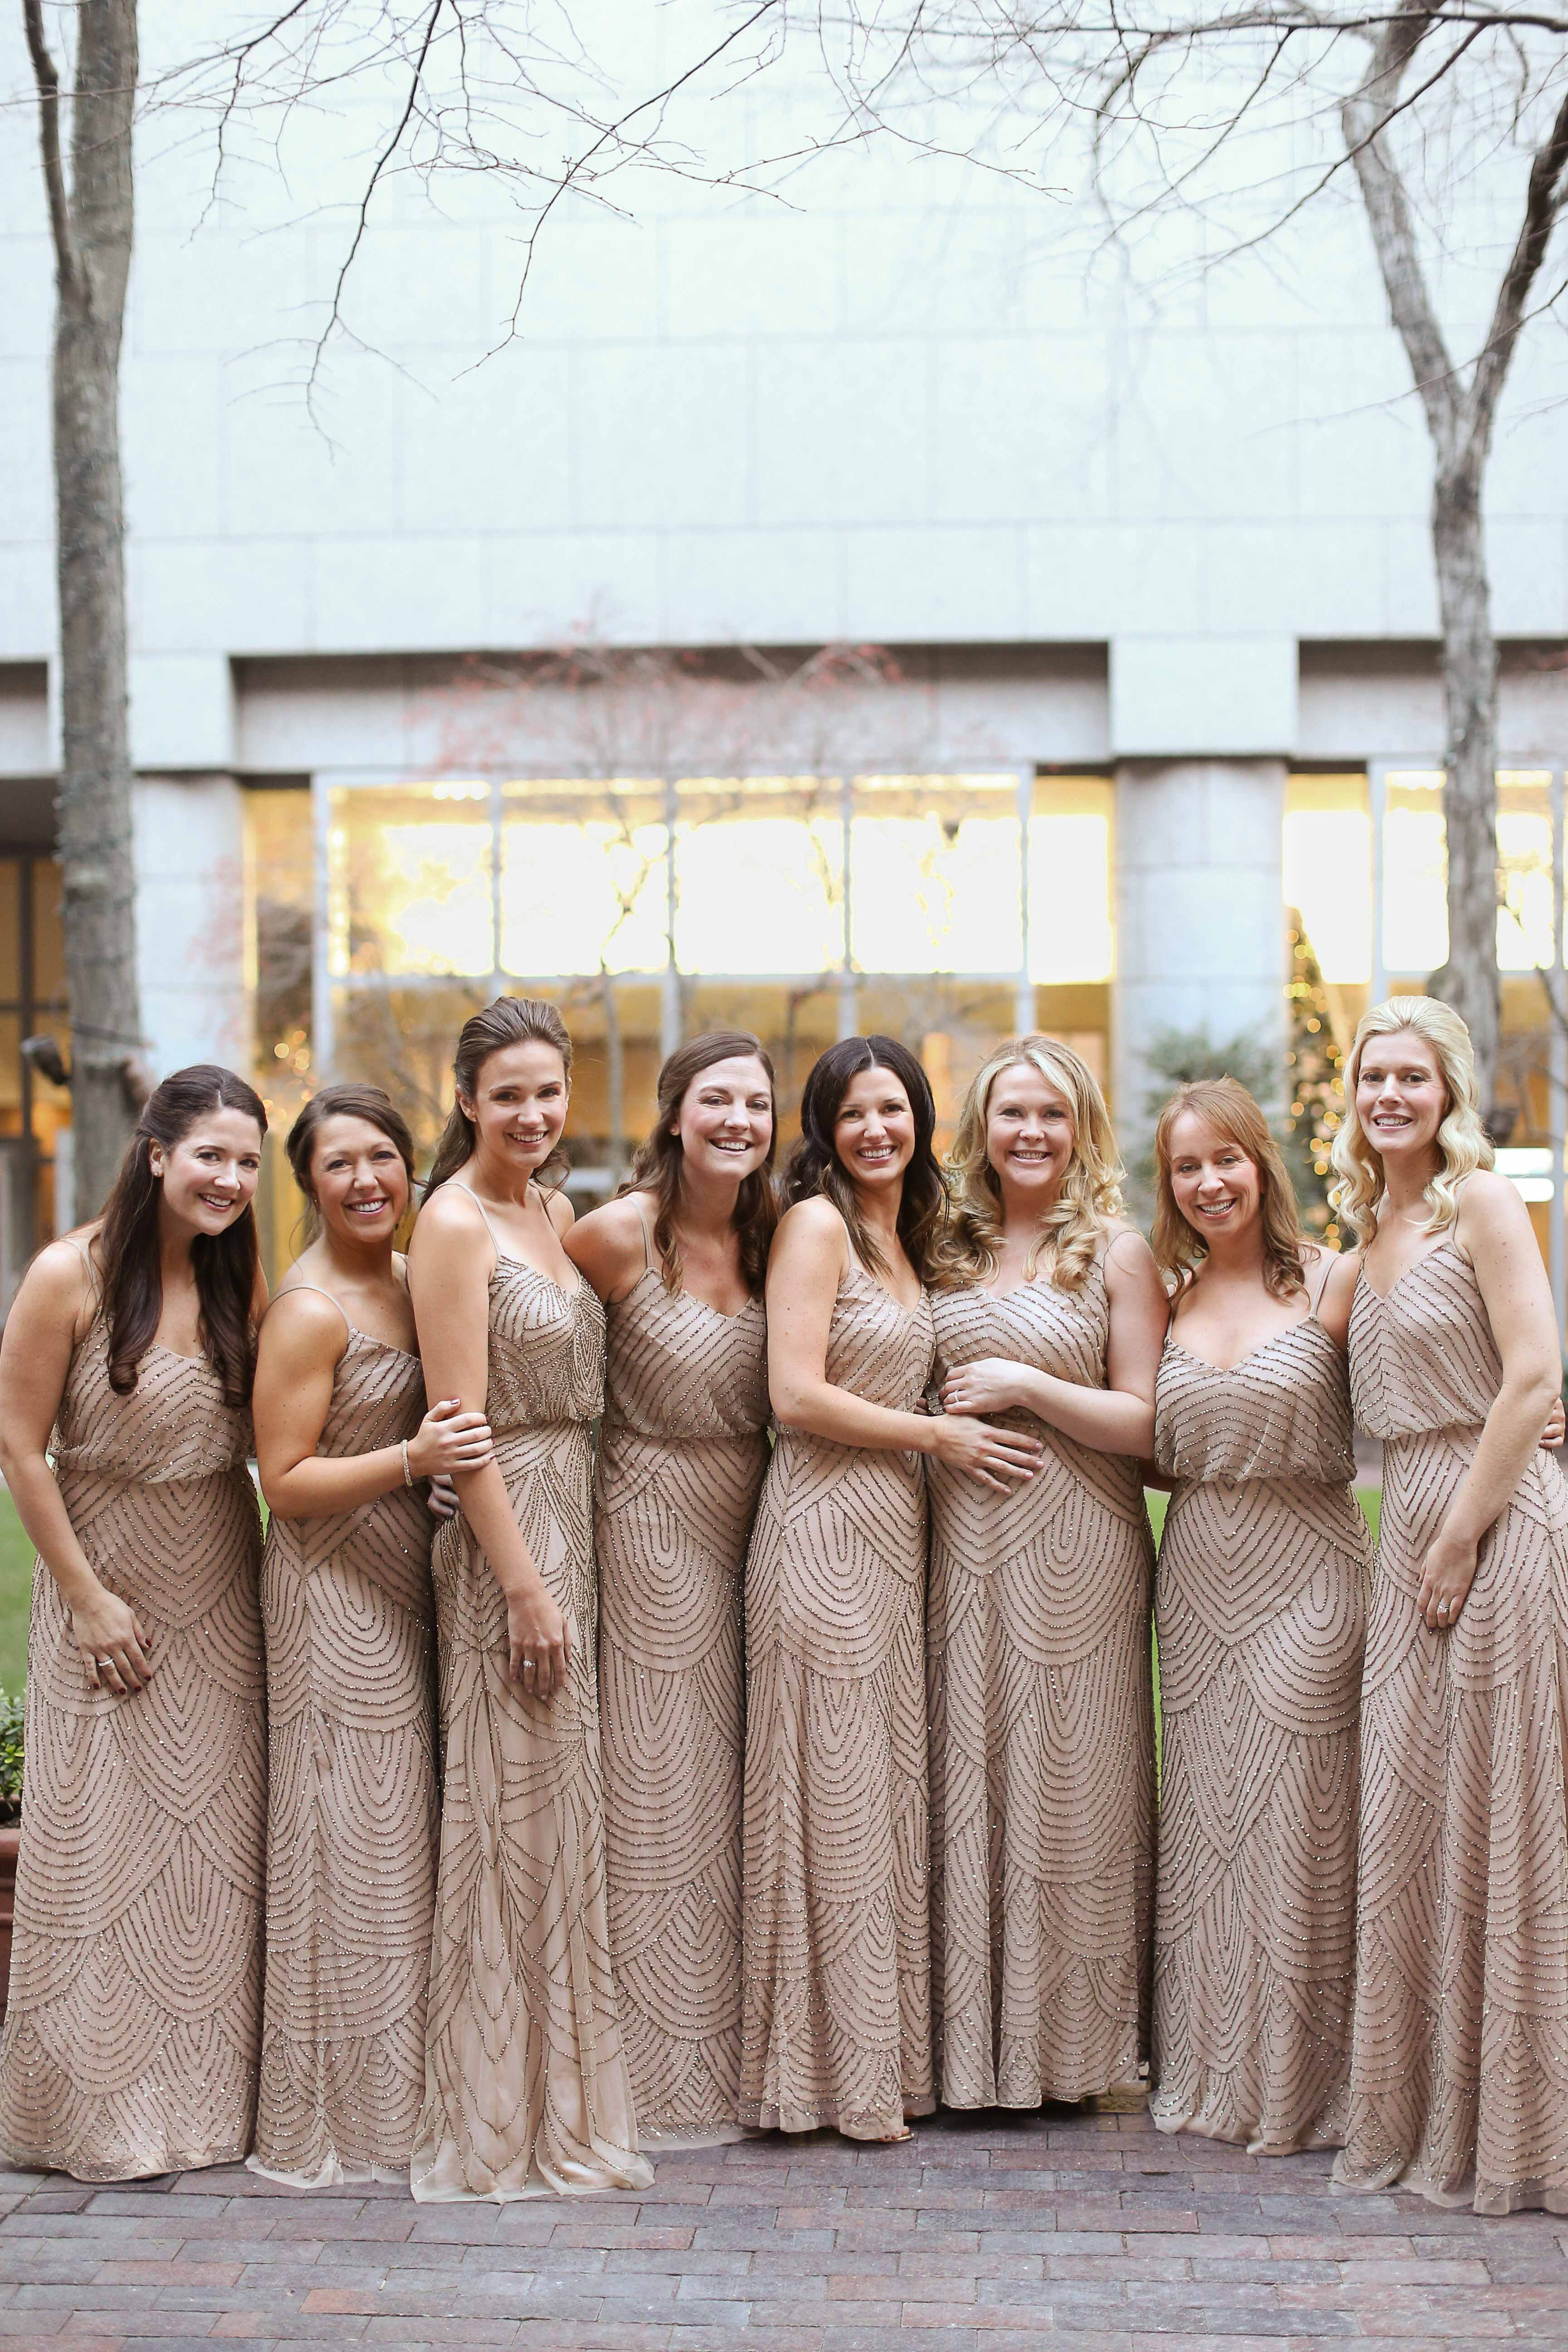 New Years Eve Wedding.A Metallic New Year S Eve Wedding In Philly Martha Stewart Weddings